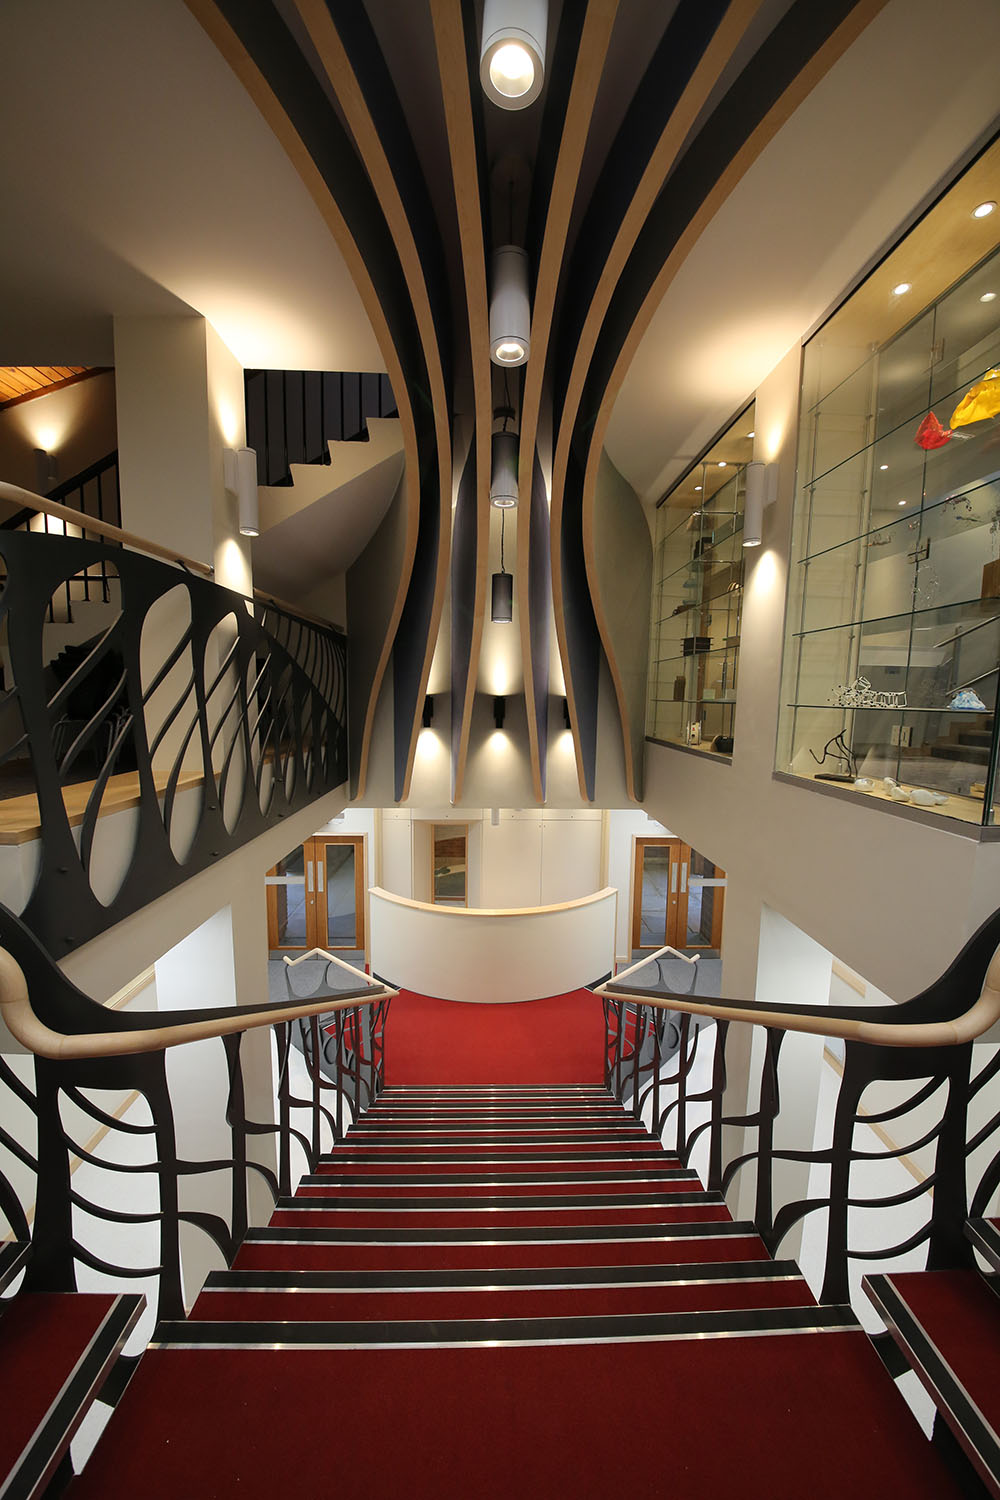 Stockport Grammar Theatre stairs